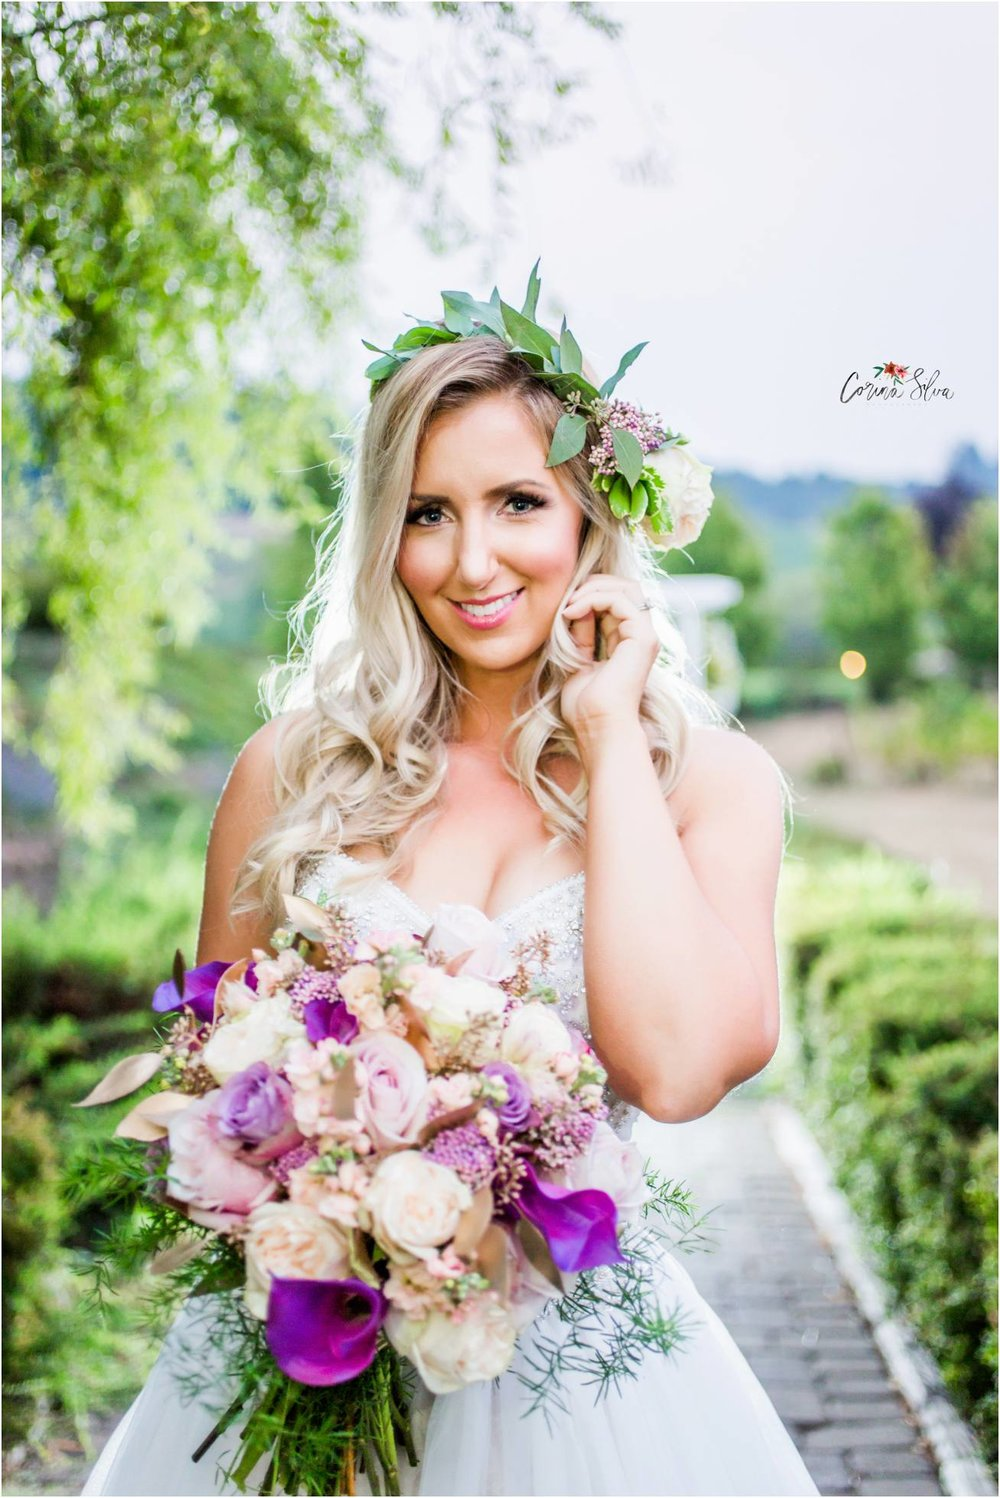 Zenith-Wineyard-Wedding-Styled-Photo-Corina-Silva-Studios_0068.jpg